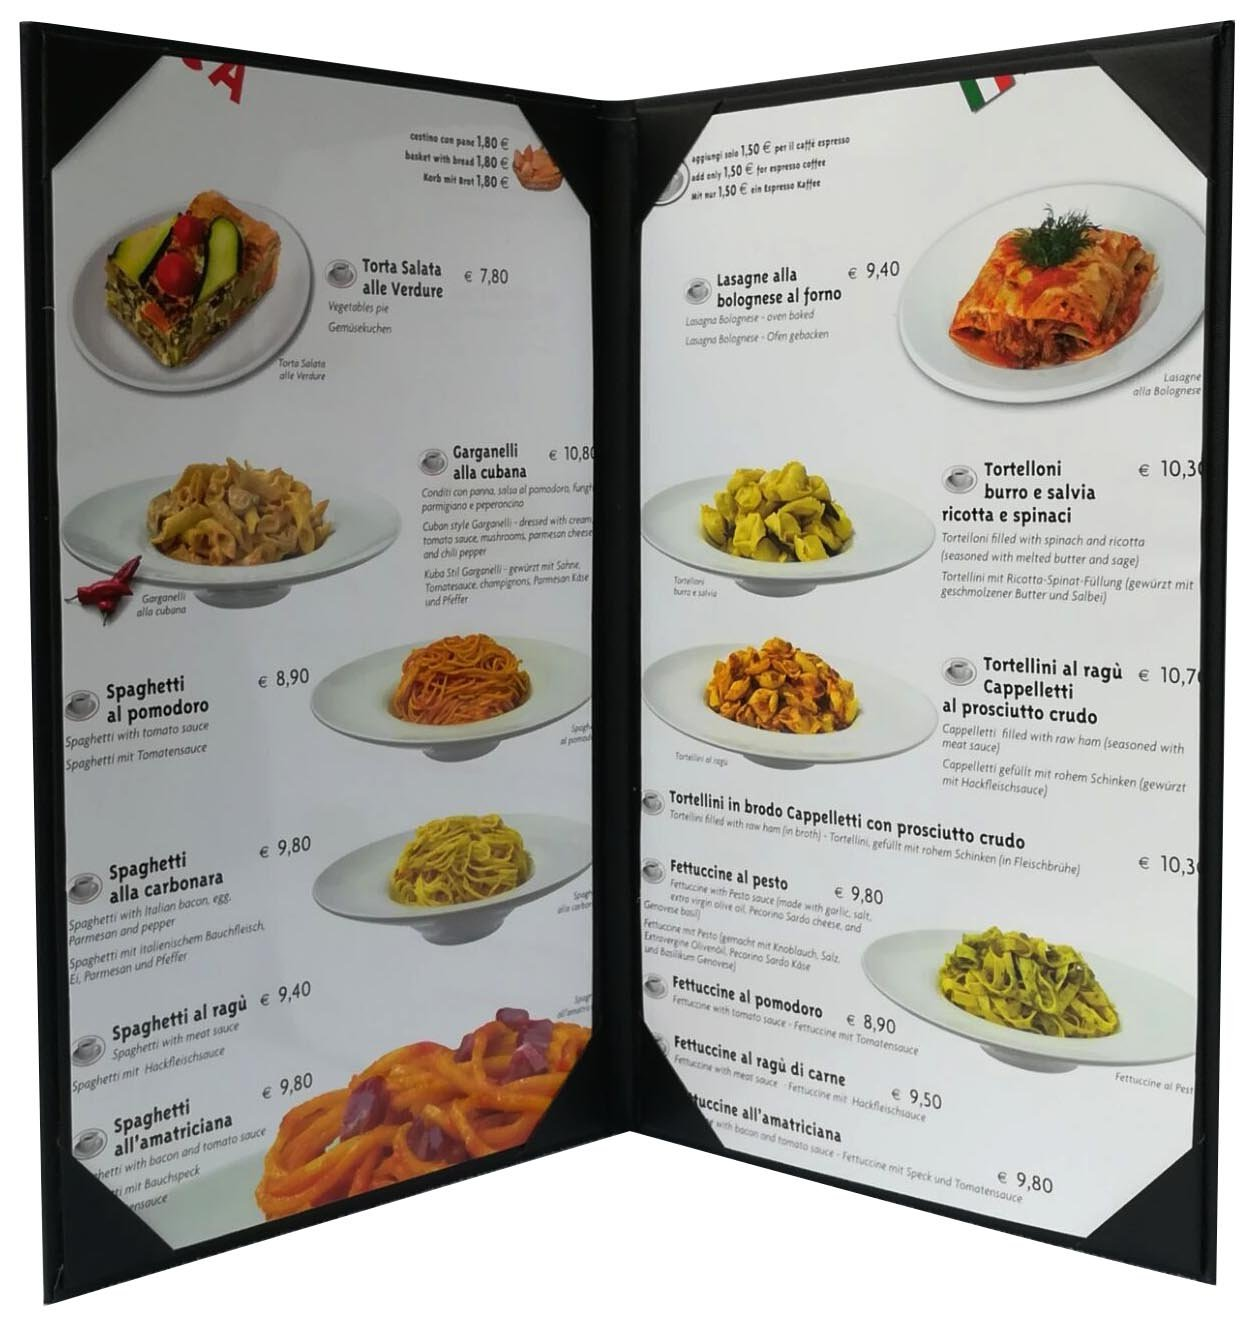 5 Pcs of Restaurant Menu Covers Holders 8.5'' X 14'' Inches,Double View,Sold By Box,With Clear PVC sheets for Paper Protection